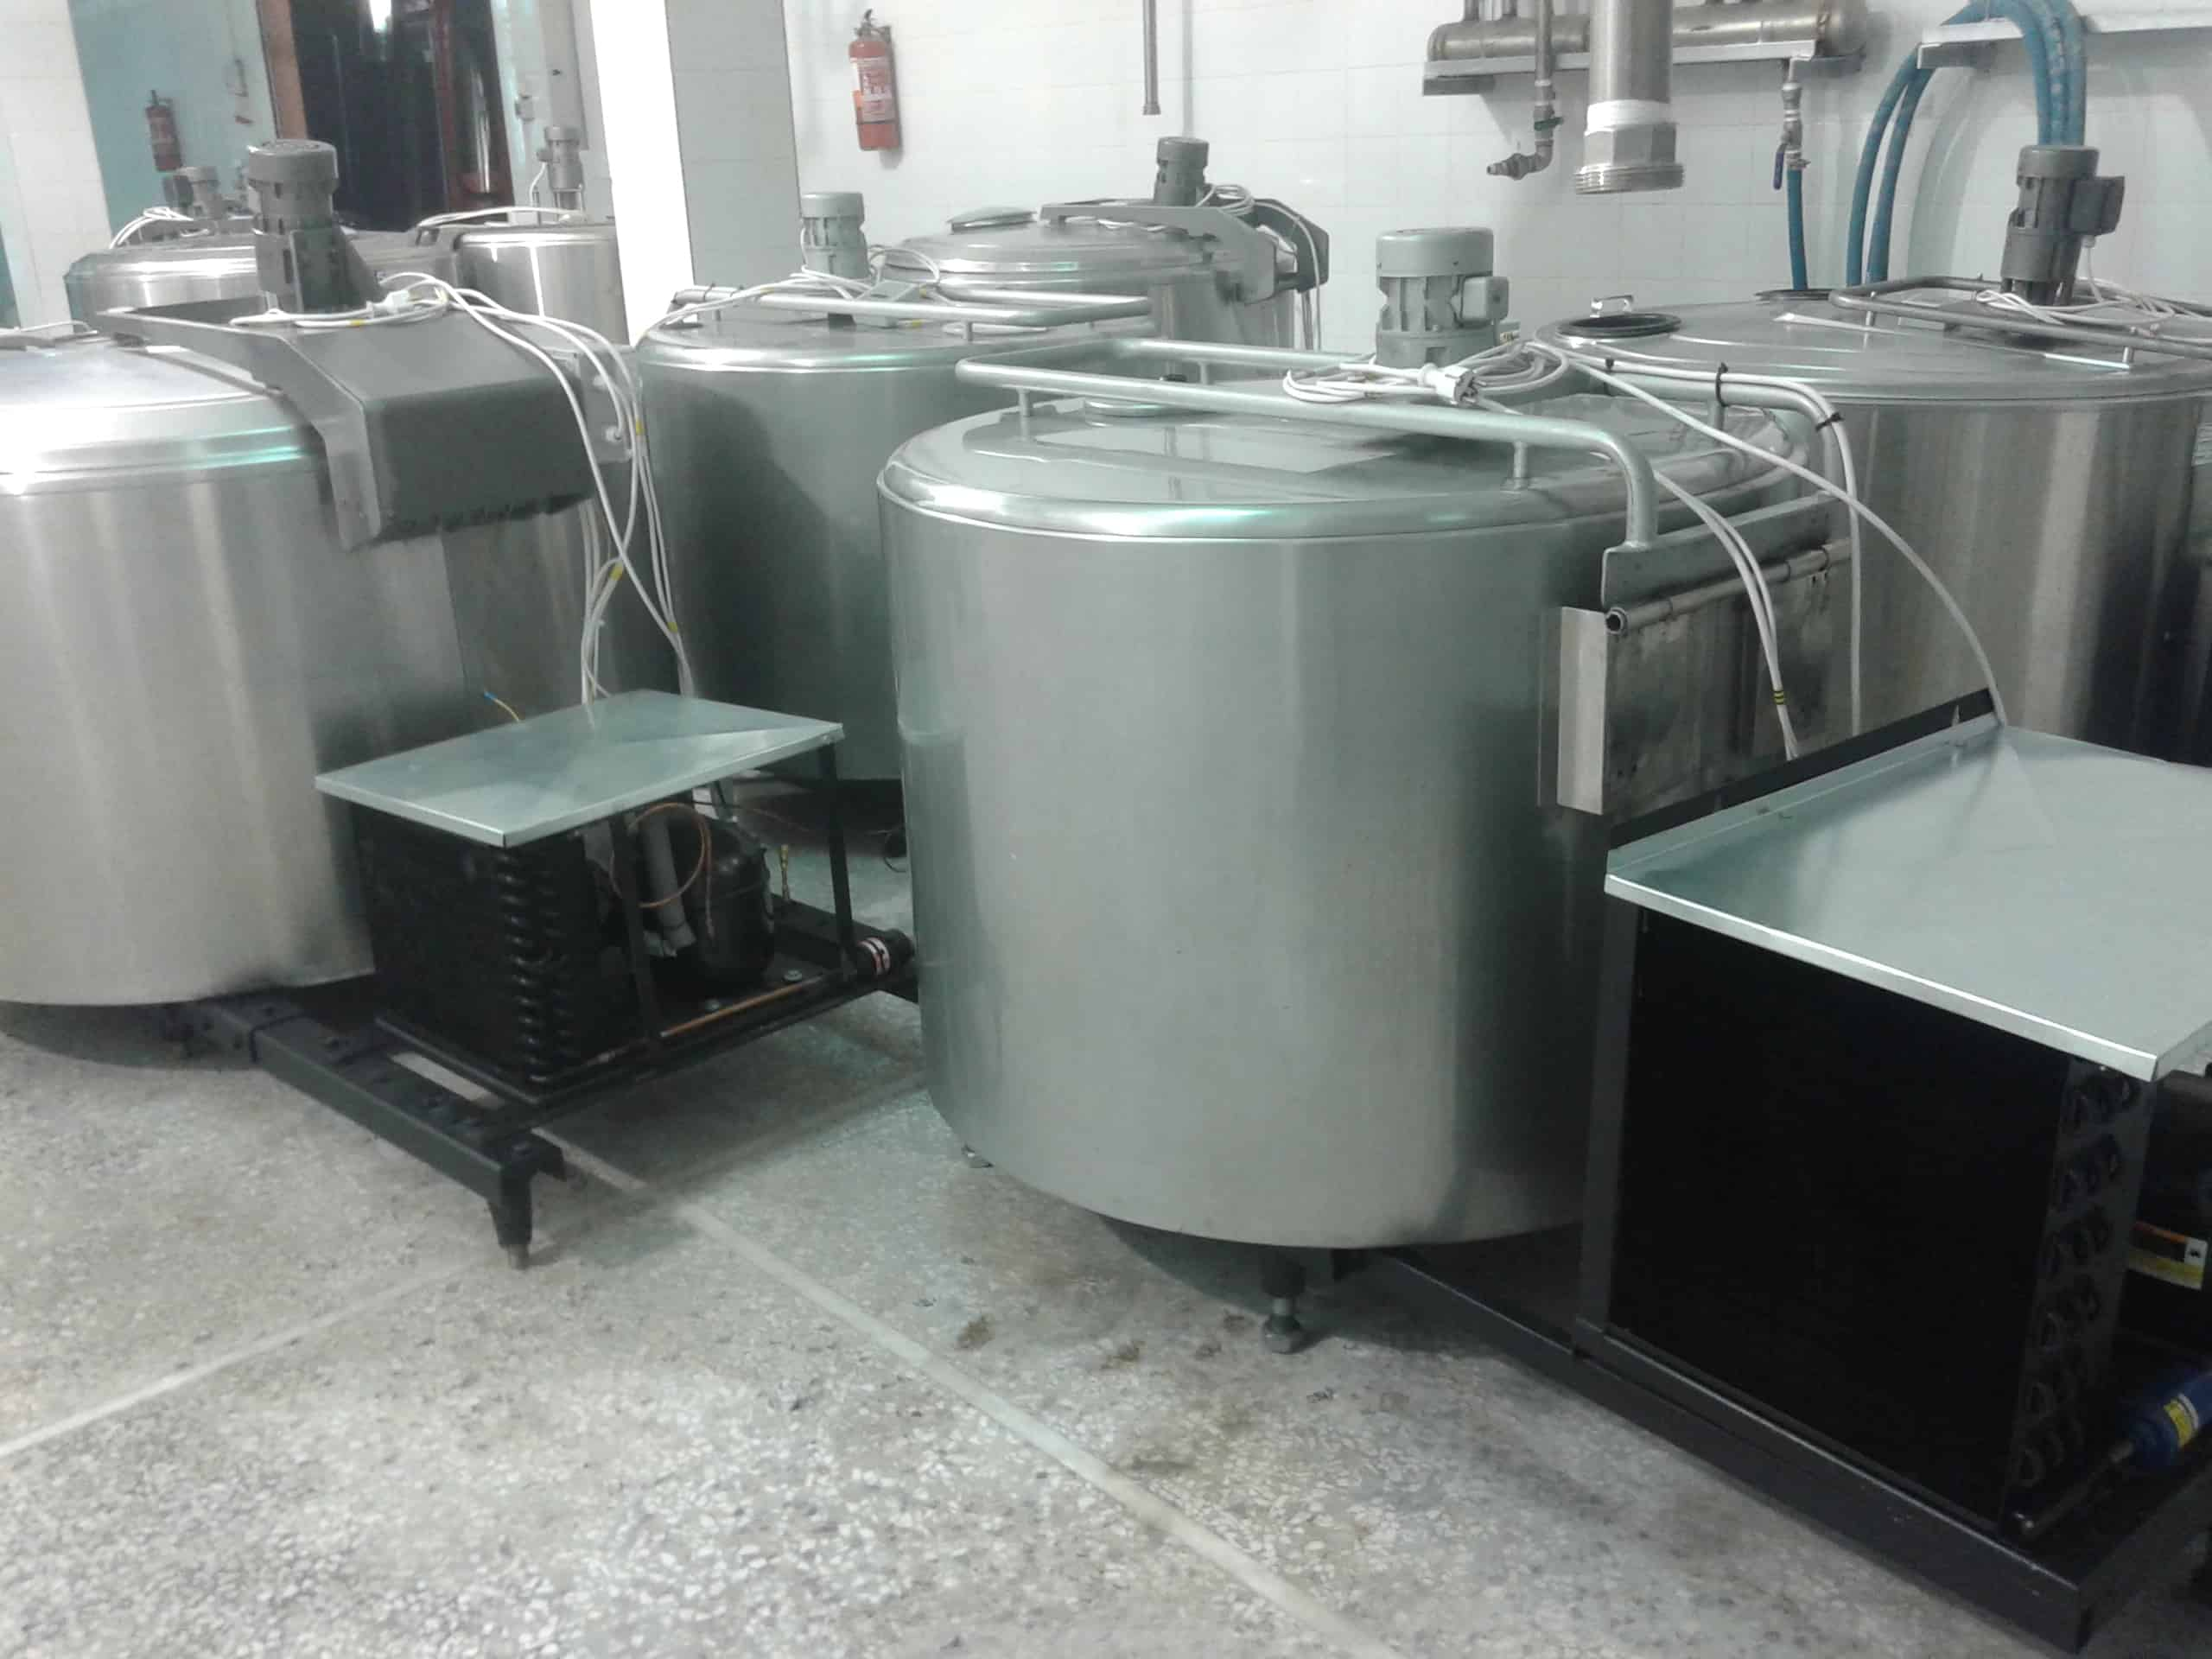 (8) 450-650 Liter Milk Cooling Tanks, Jacketed with On-Board Compressors, 220V